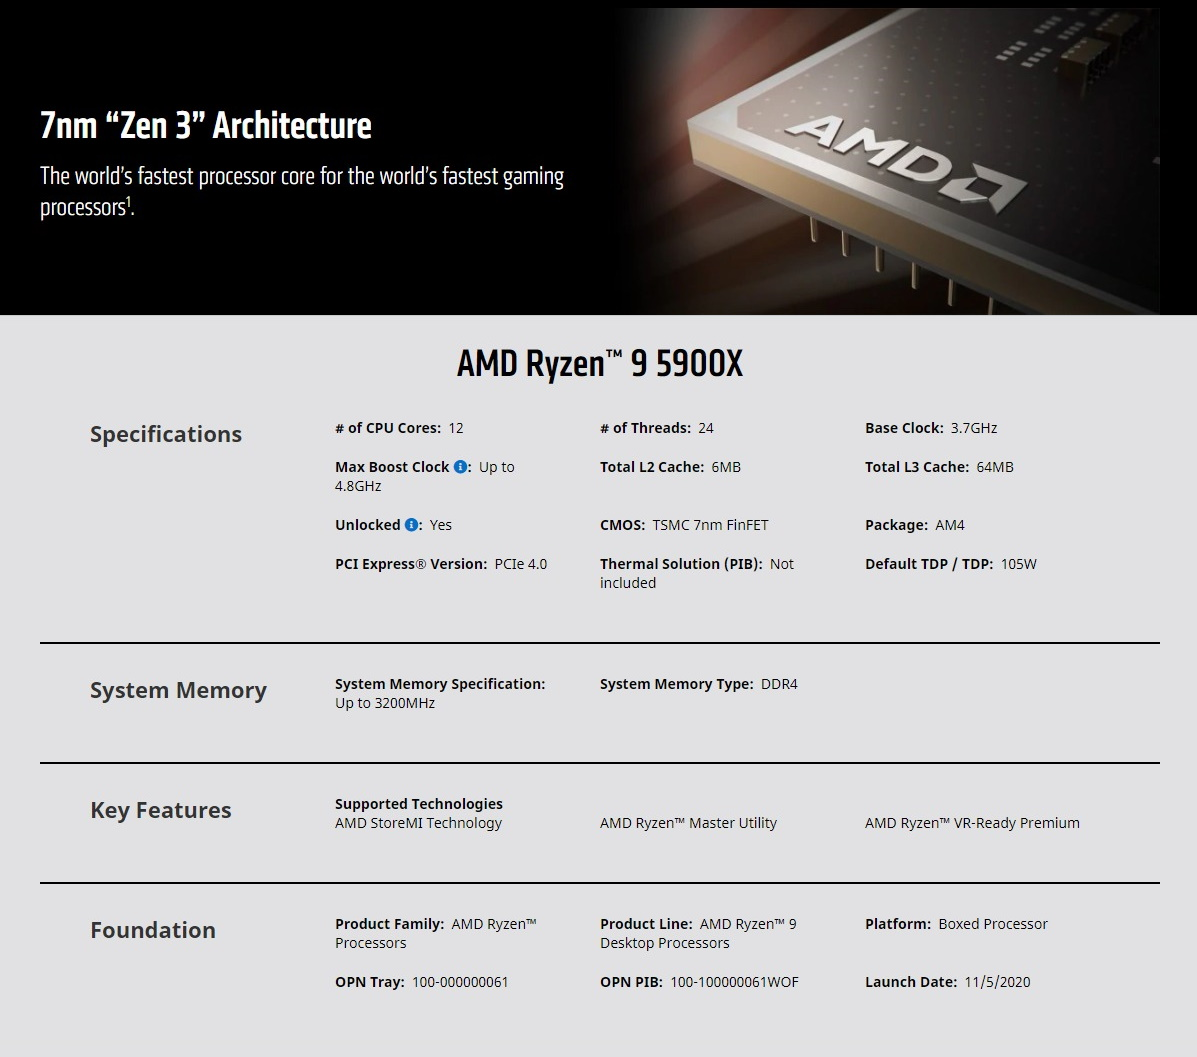 A large marketing image providing additional information about the product AMD Ryzen 9 5900X 3.7Ghz 12 Core 24 Thread AM4 - No HSF Retail Box - Additional alt info not provided